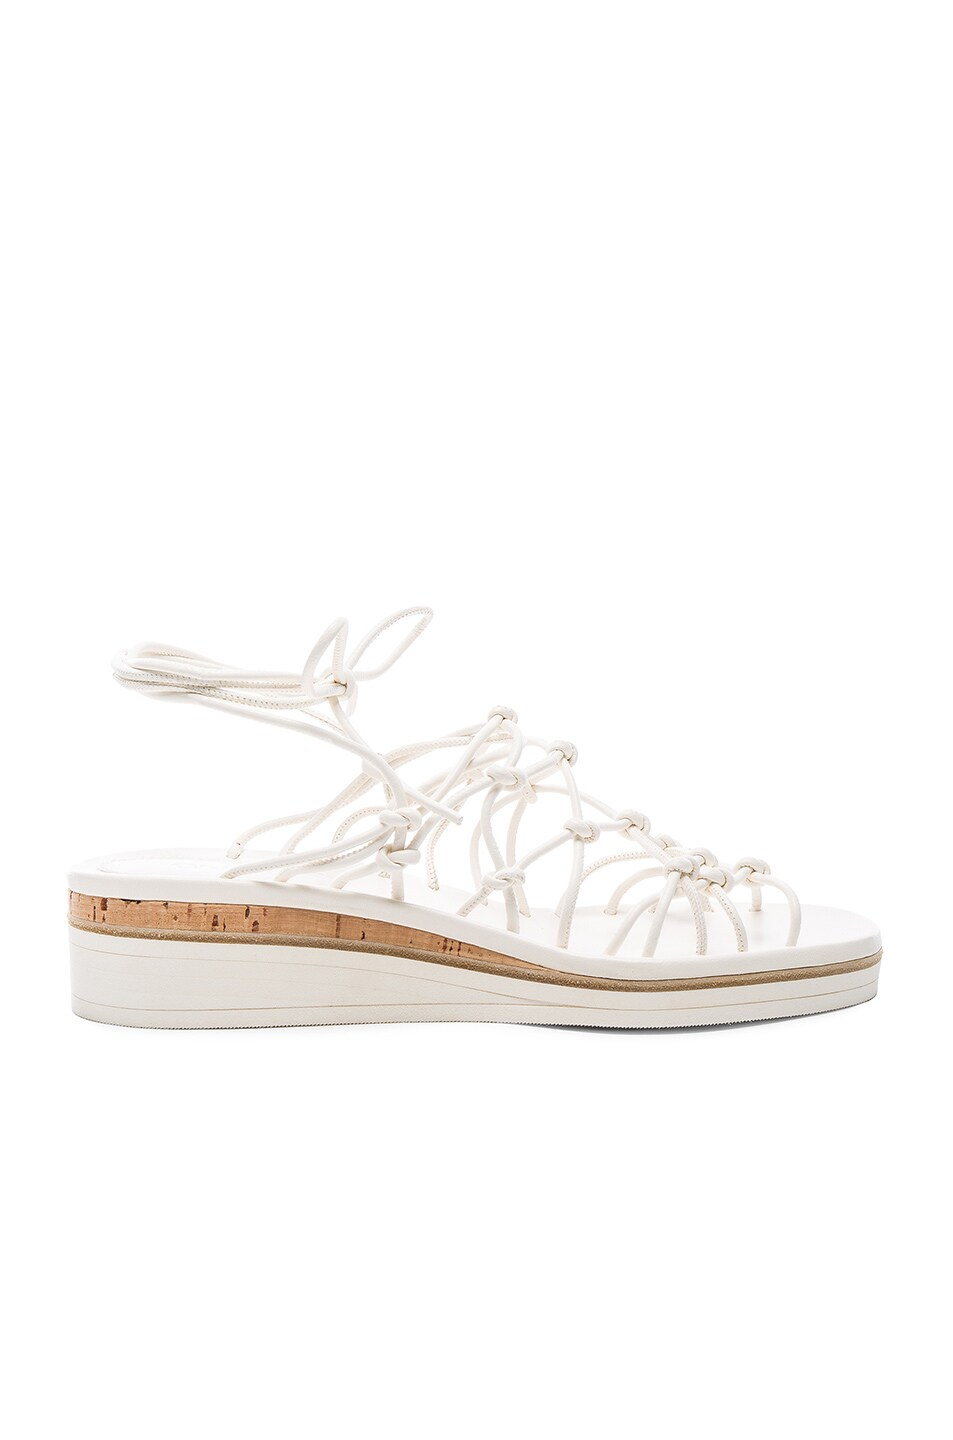 Image 1 of Chloe Leather Net Sandals in White 27d5da23925